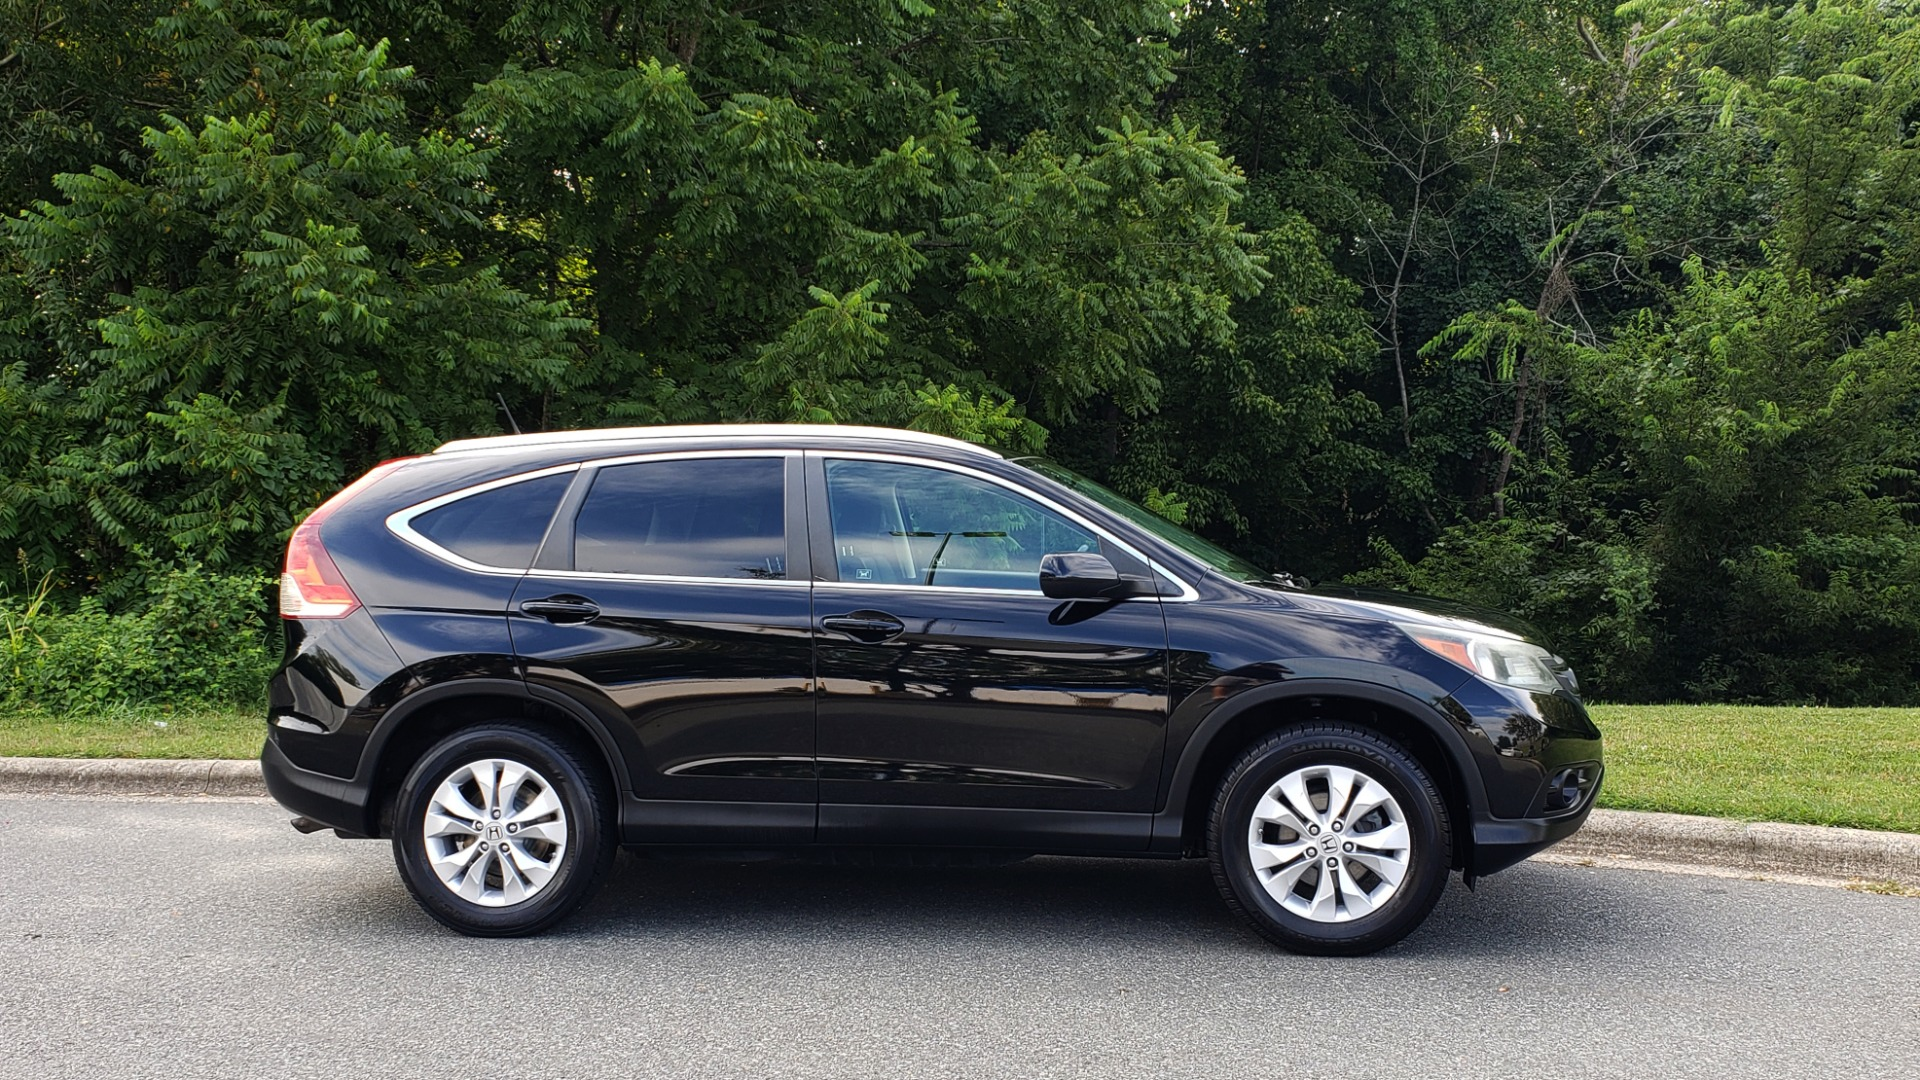 Used 2012 Honda CR-V EX-L / AWD / 5DR / SUNROOF / HEATED SEATS / REARVIEW for sale Sold at Formula Imports in Charlotte NC 28227 5